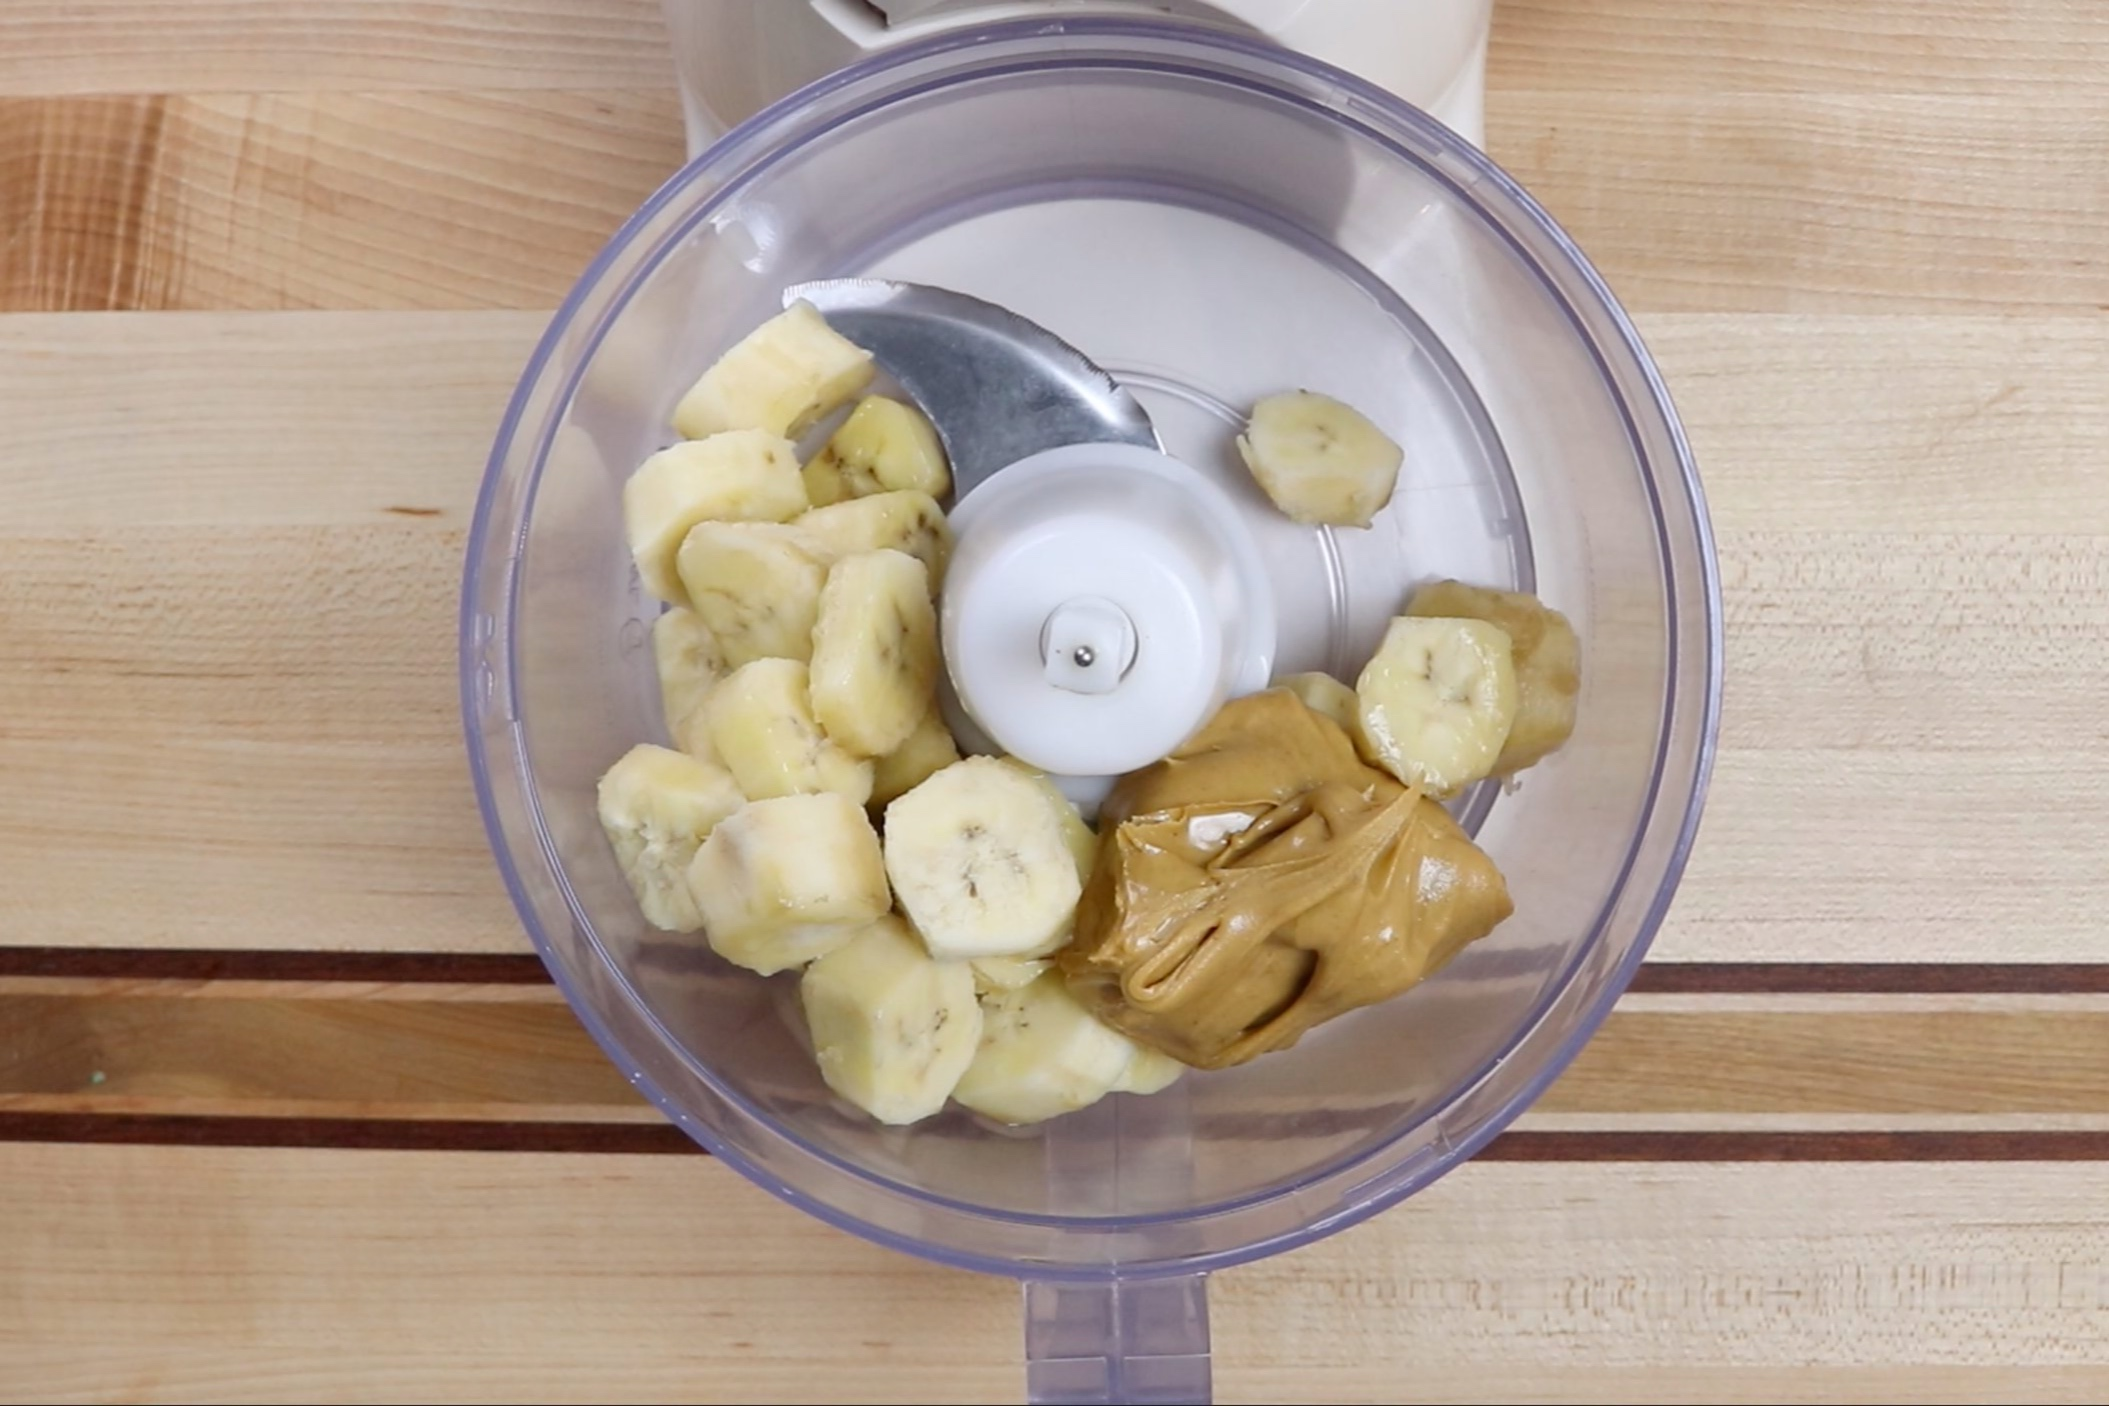 1.In a food processor or high-speed blender, add the banana slices and peanut butter. -